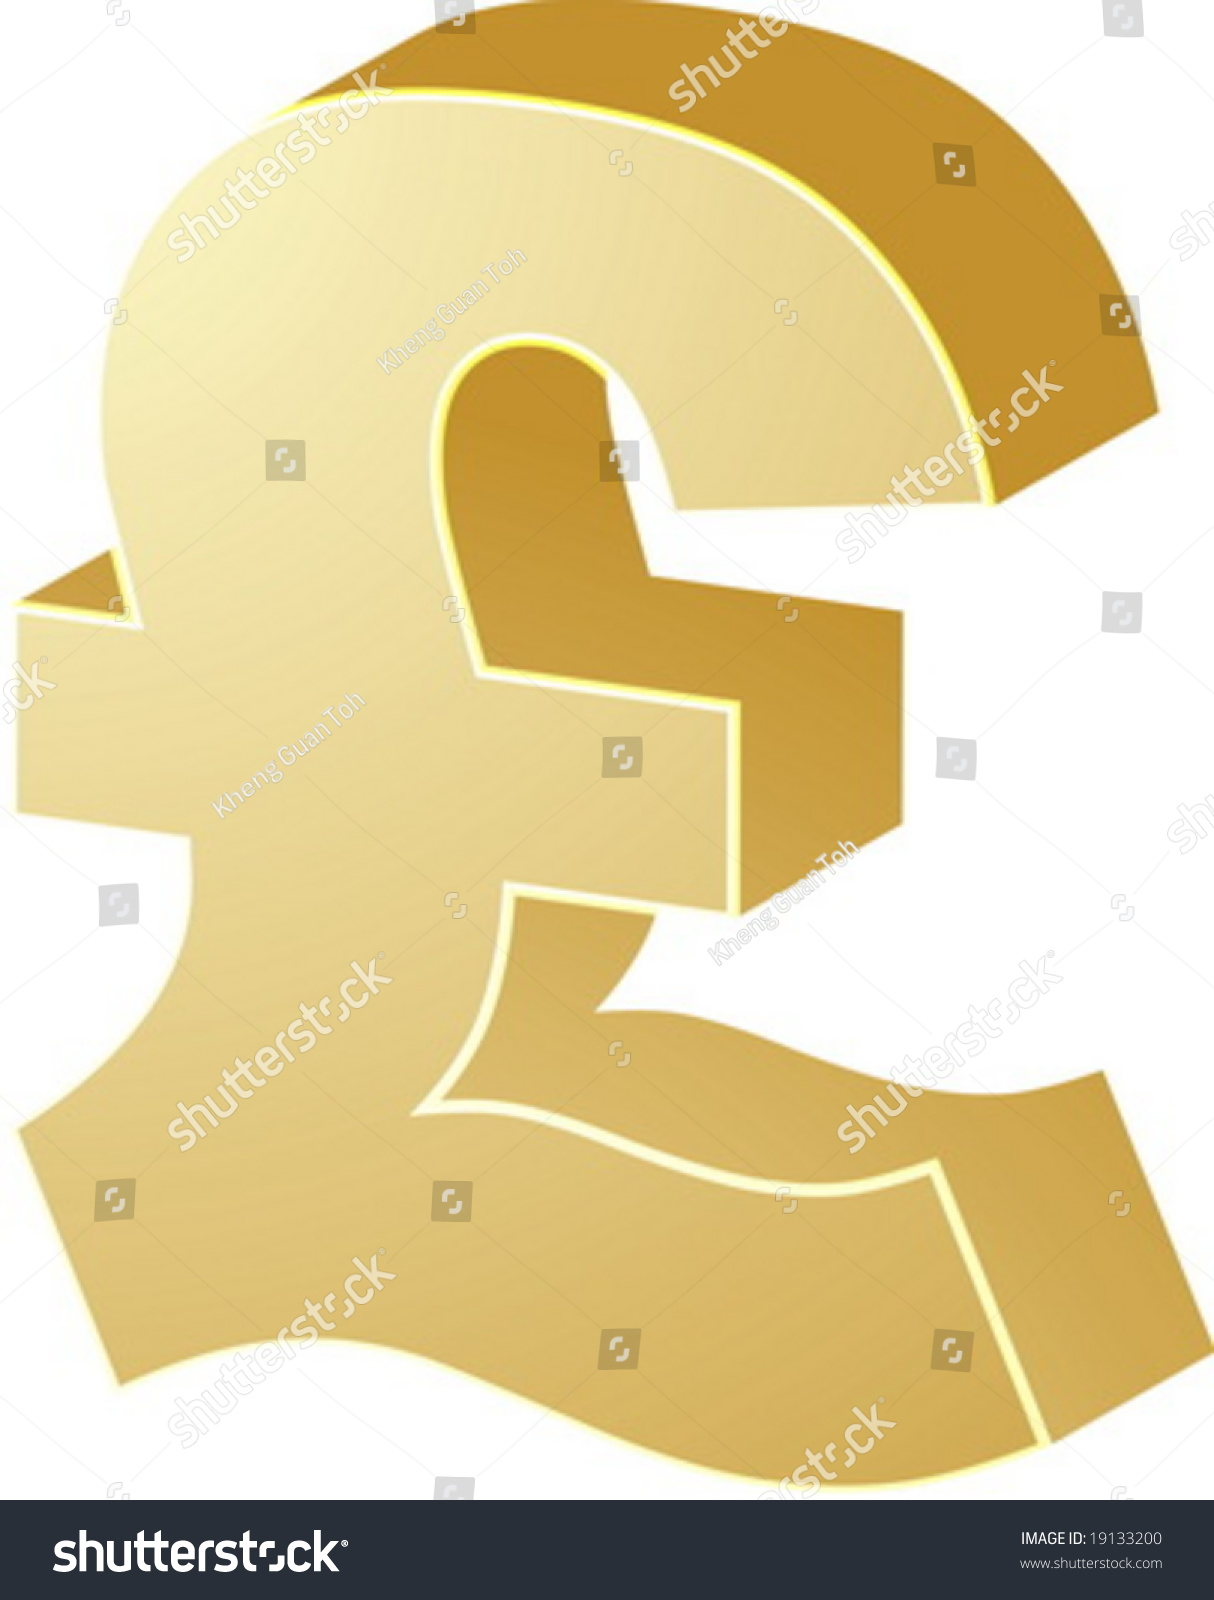 British Uk Pounds Currency Symbol Isometric Stock Vector 19133200